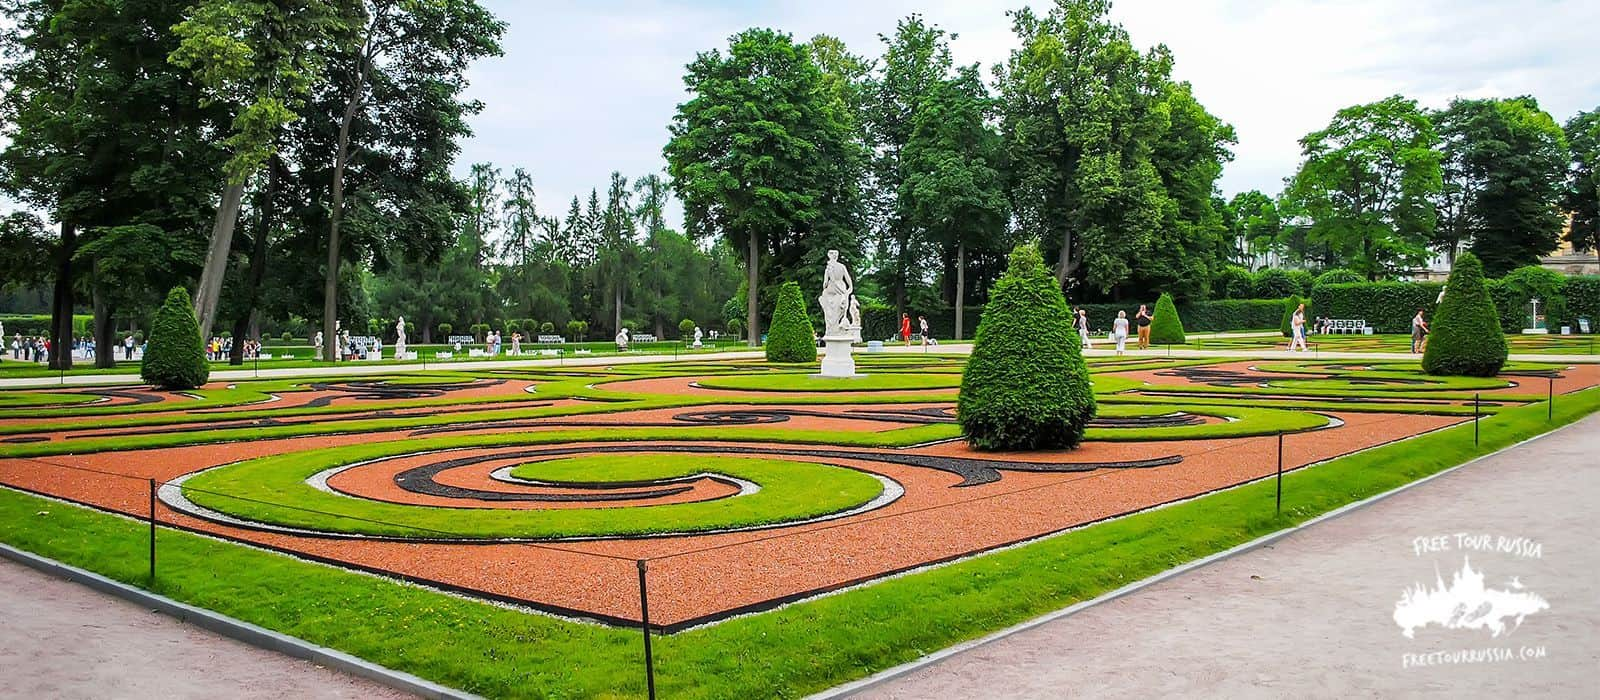 Tour in the St. Petersburg Gardens